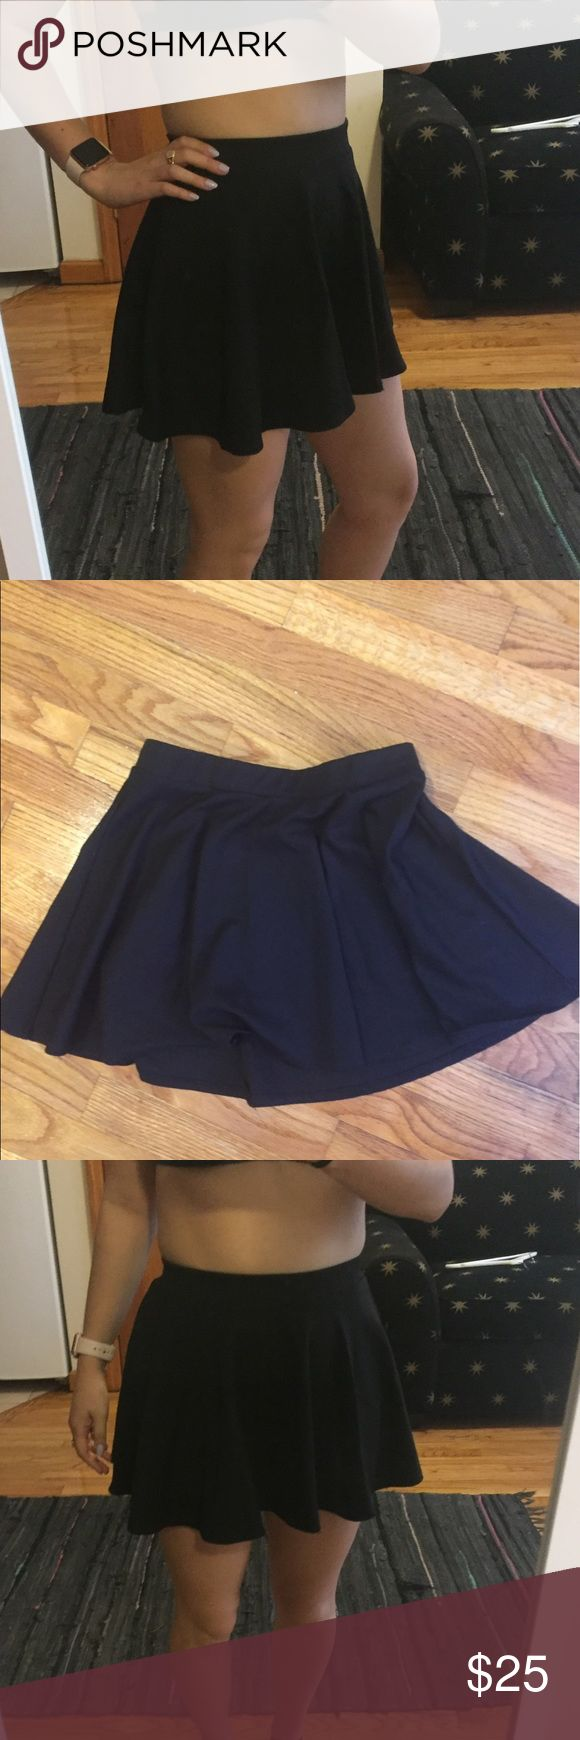 Black circle skirt Black circle skirt from a boutique. Perfect for summer and great for nights out or dressed down for weekdays.  Size M but fits small perfect (as pictured above on a size S). Light cotton material. AA for exposure American Apparel Skirts Circle & Skater